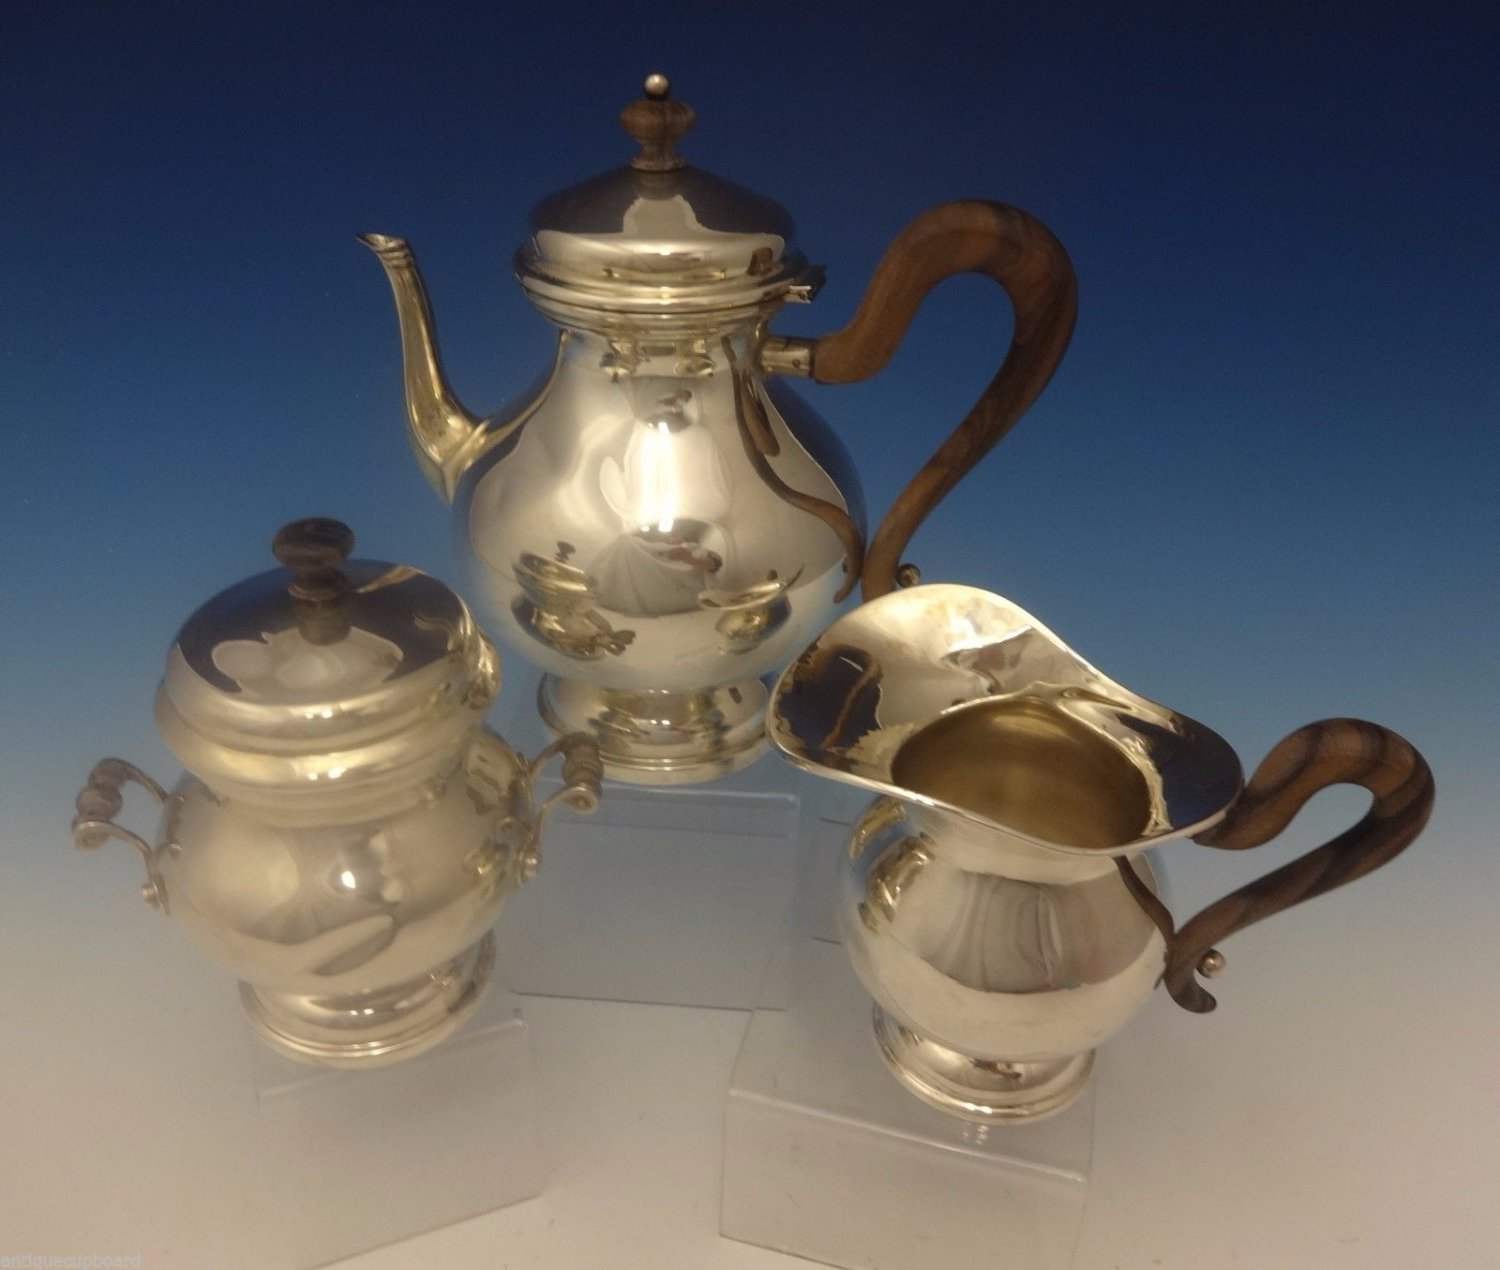 Buccellati Italian Sterling Silver Tea Set 3pc with Rosewood Handles (#0290)